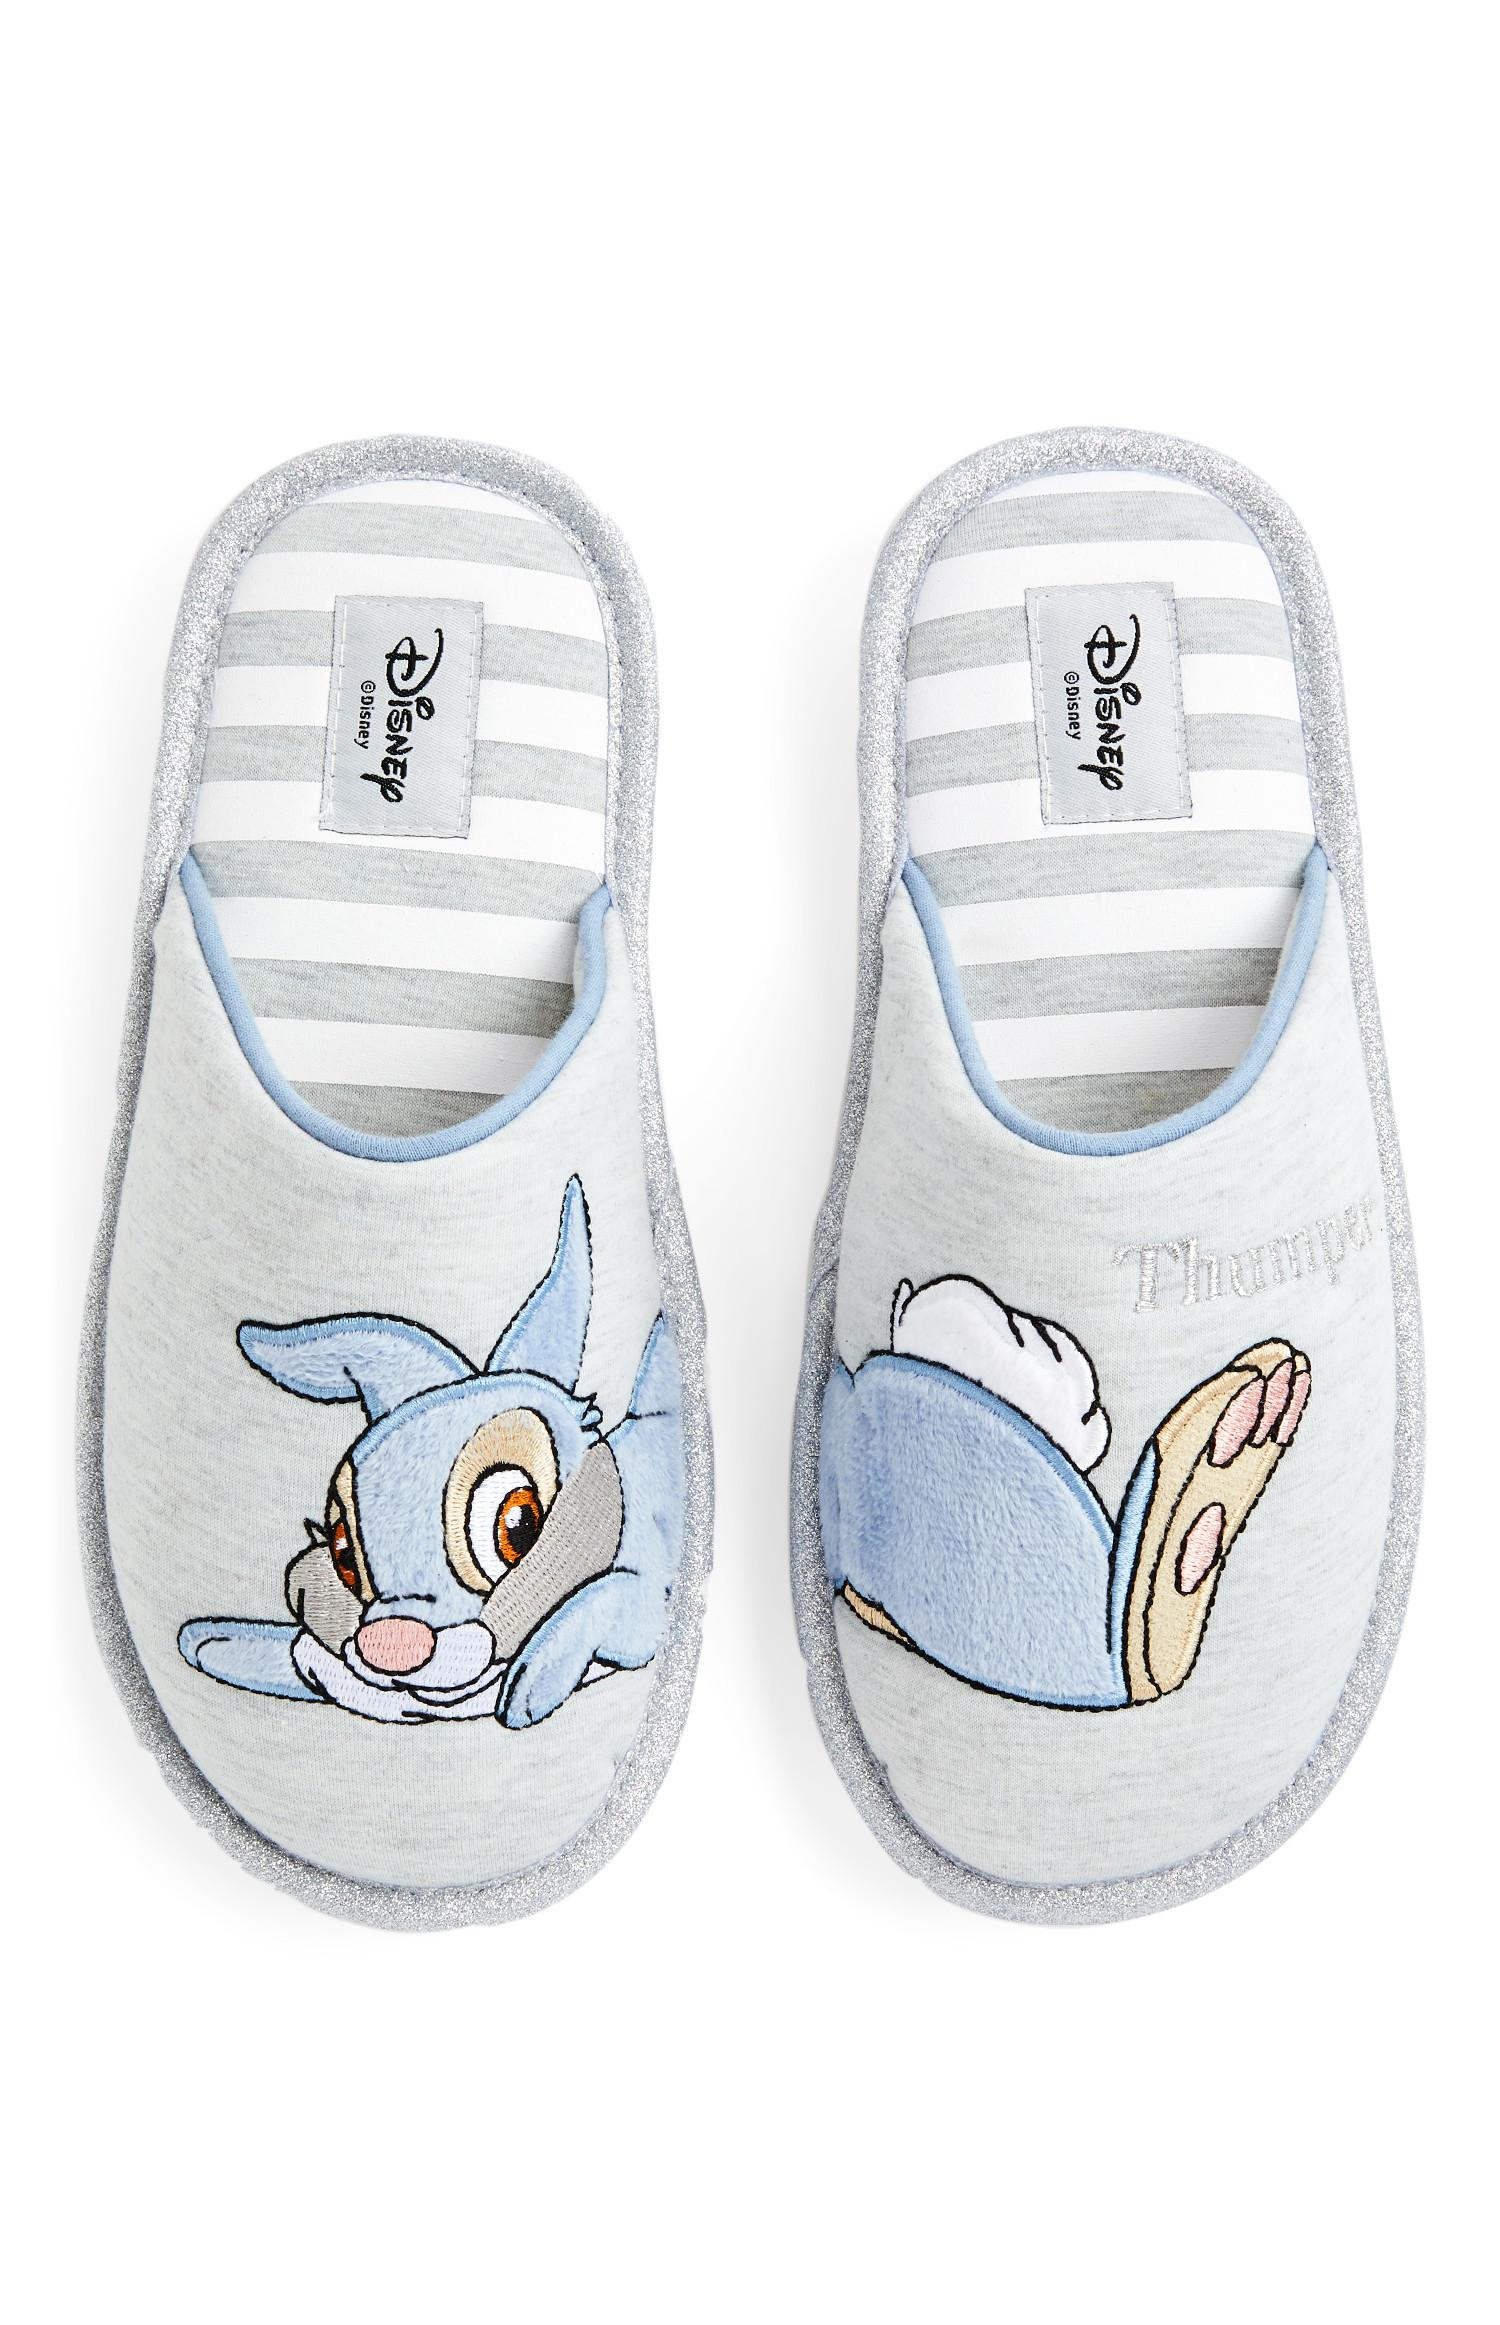 Disney panpan bambi 3 Paires Chaussure Liners Chaussettes Sneaker Femmes UK 4-8 Primark